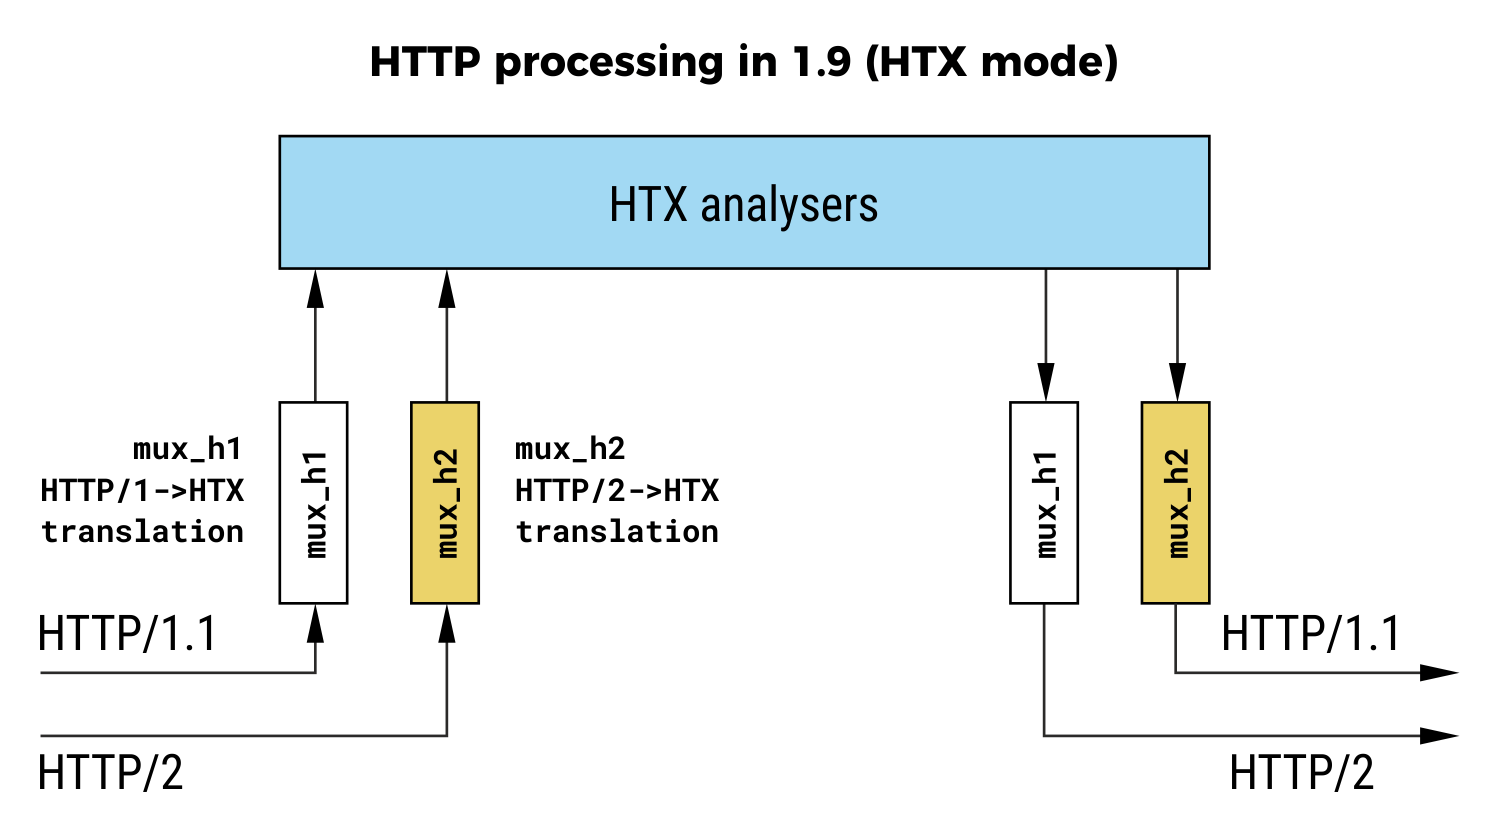 hight resolution of http processing in haproxy 1 9